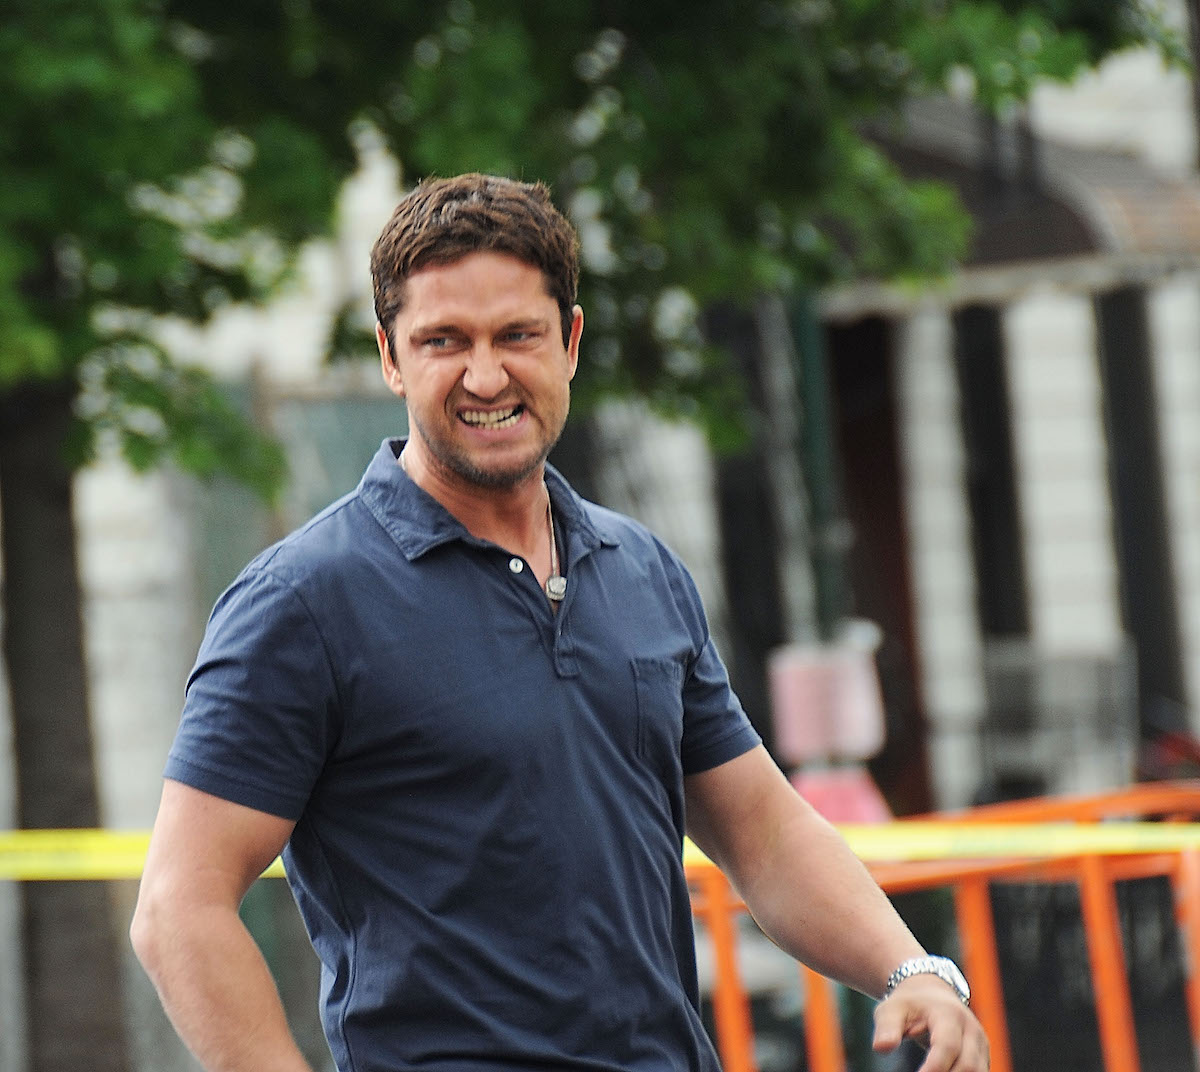 Gerard Butler on the set of a movie